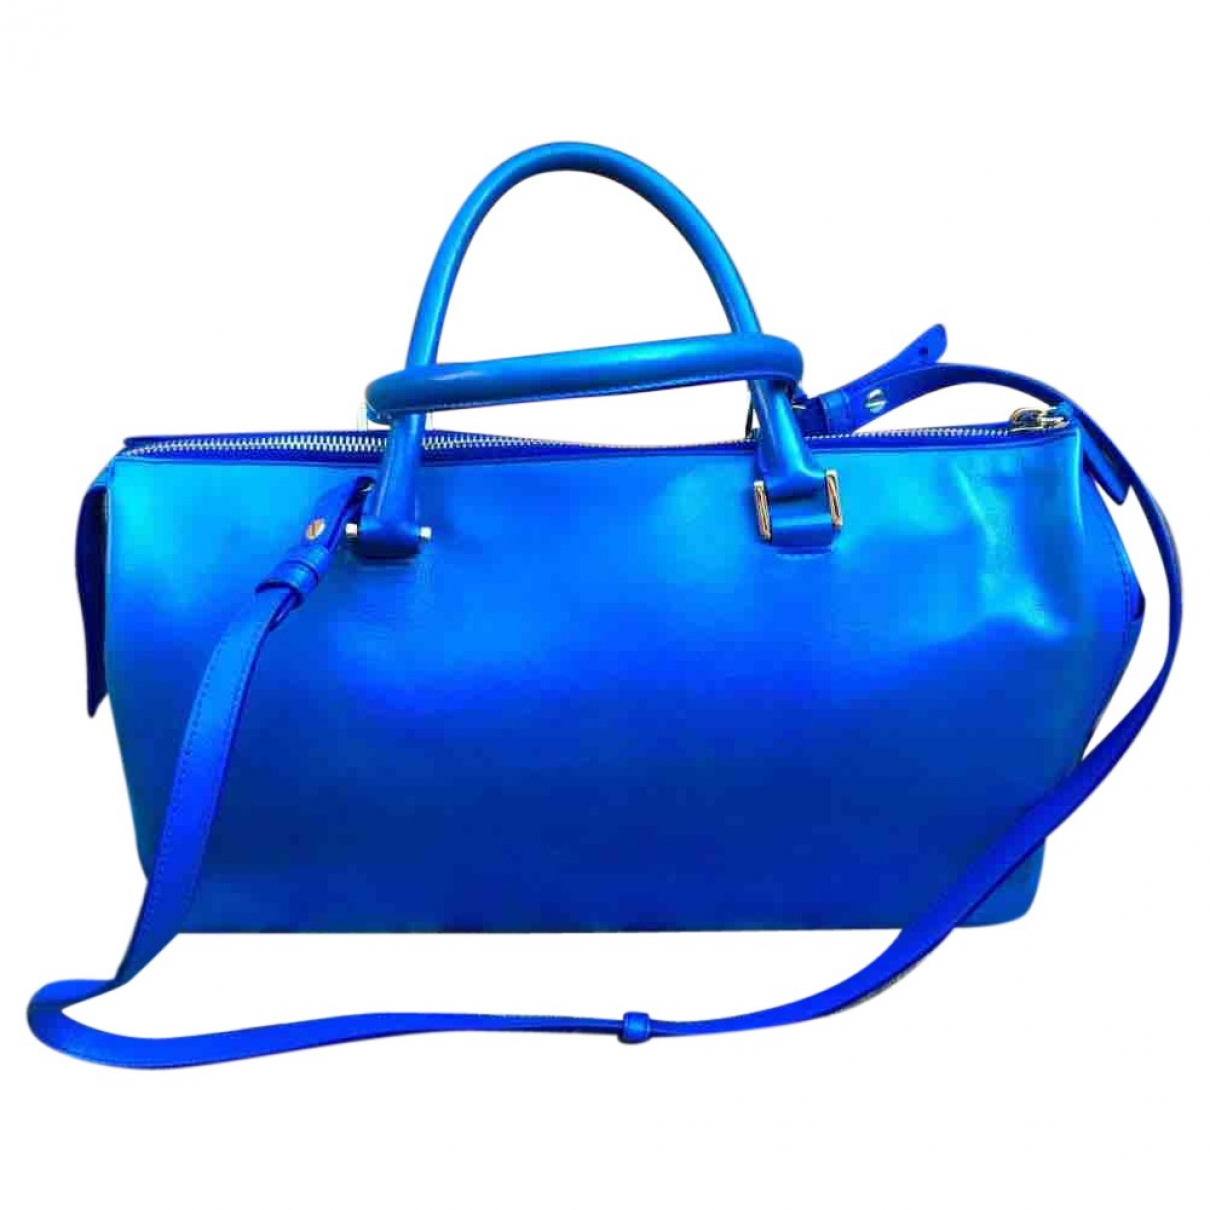 Jil Sander \N Blue Leather handbag for Women \N